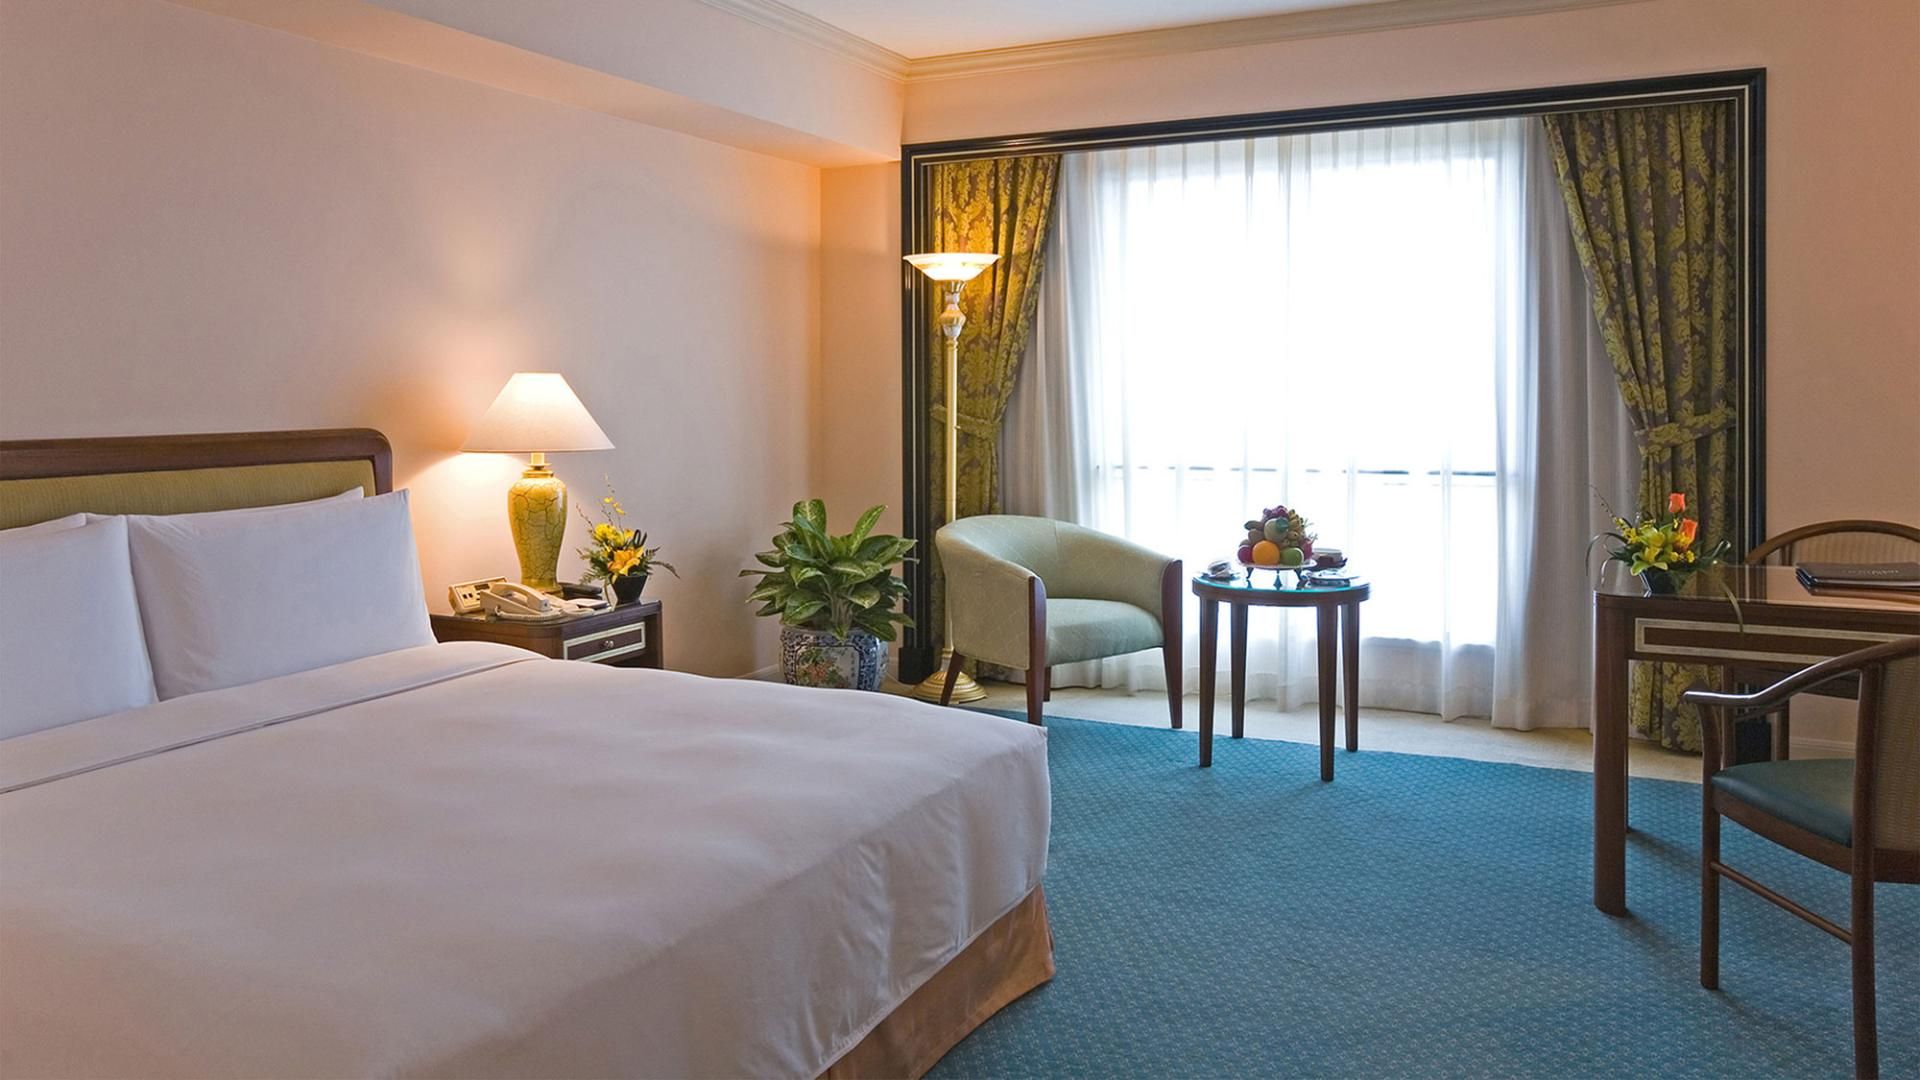 Lotte Legend Hotel Saigon - Guest Room - Standard - Deluxe Room (City View)